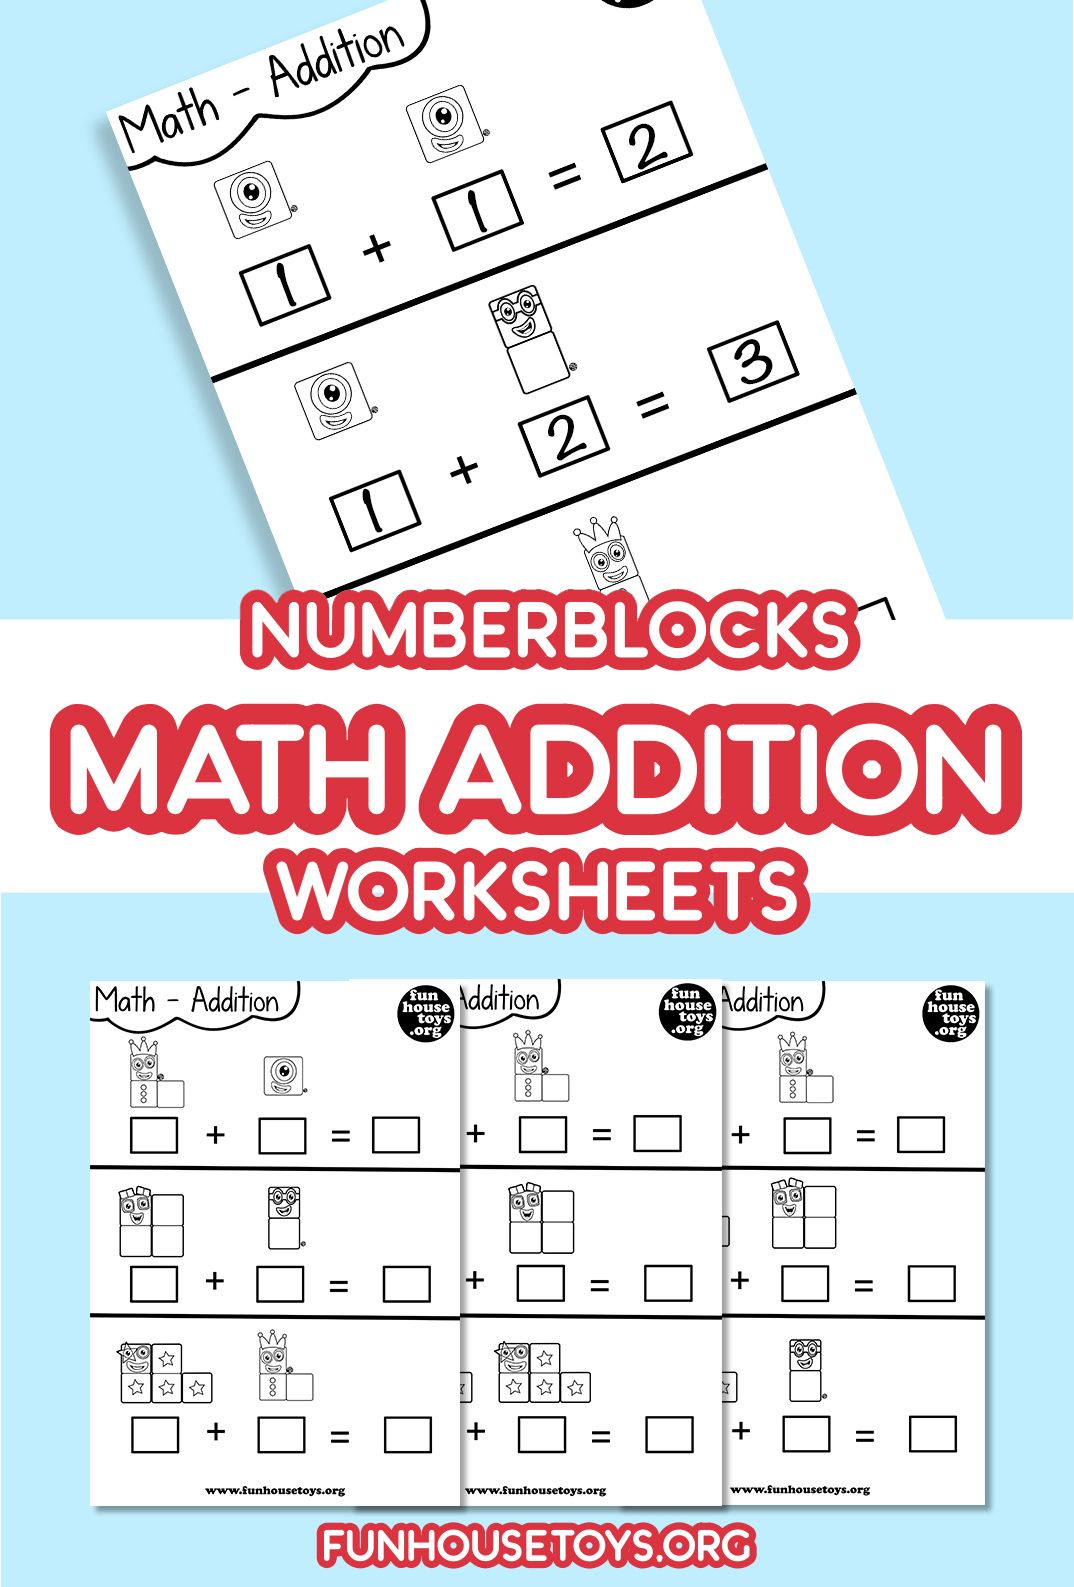 Numberblocks Math Addition Printable Sheets